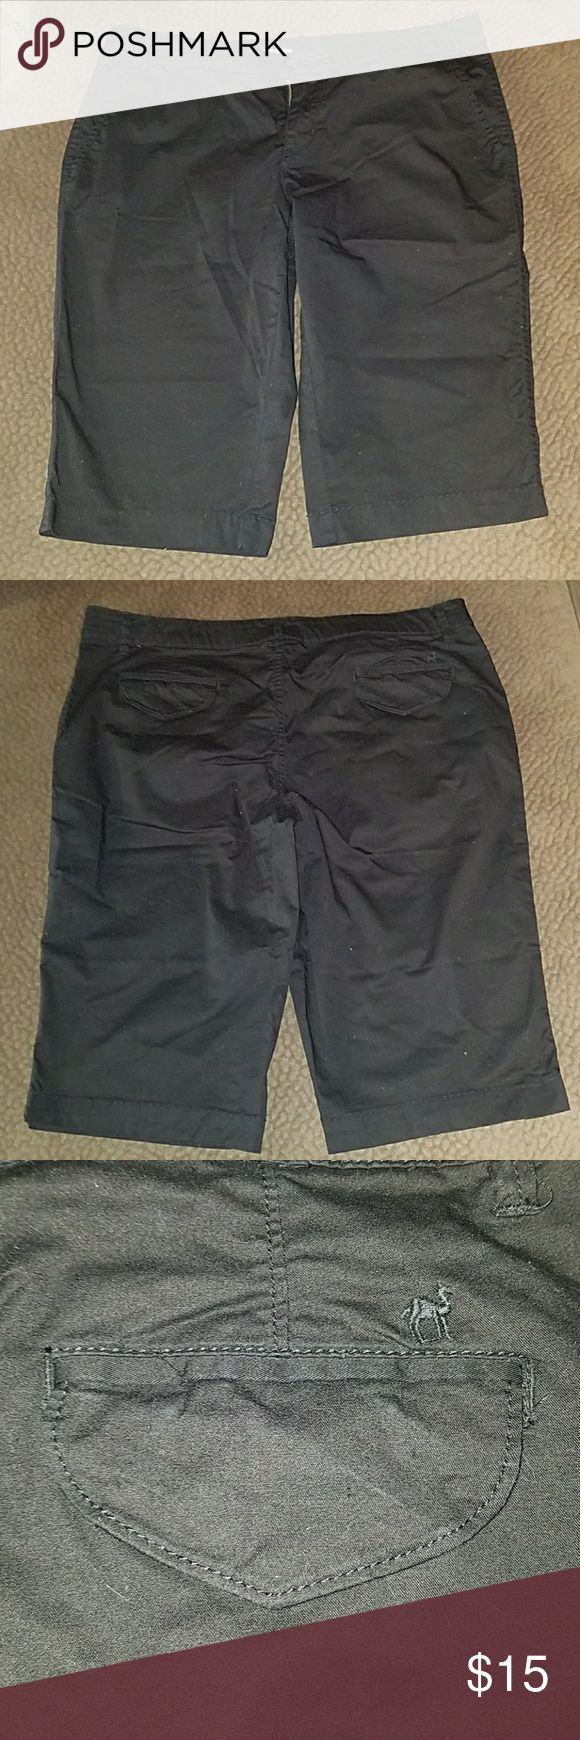 "Black Red Camel shorts size 13 Black knee length shorts. Red Camel junior size 13. Laying flat 18"" width at waist. Length 22.5"" x 14"" inseam. Gently worn - no holes no stains. Red Camel Shorts Bermudas"